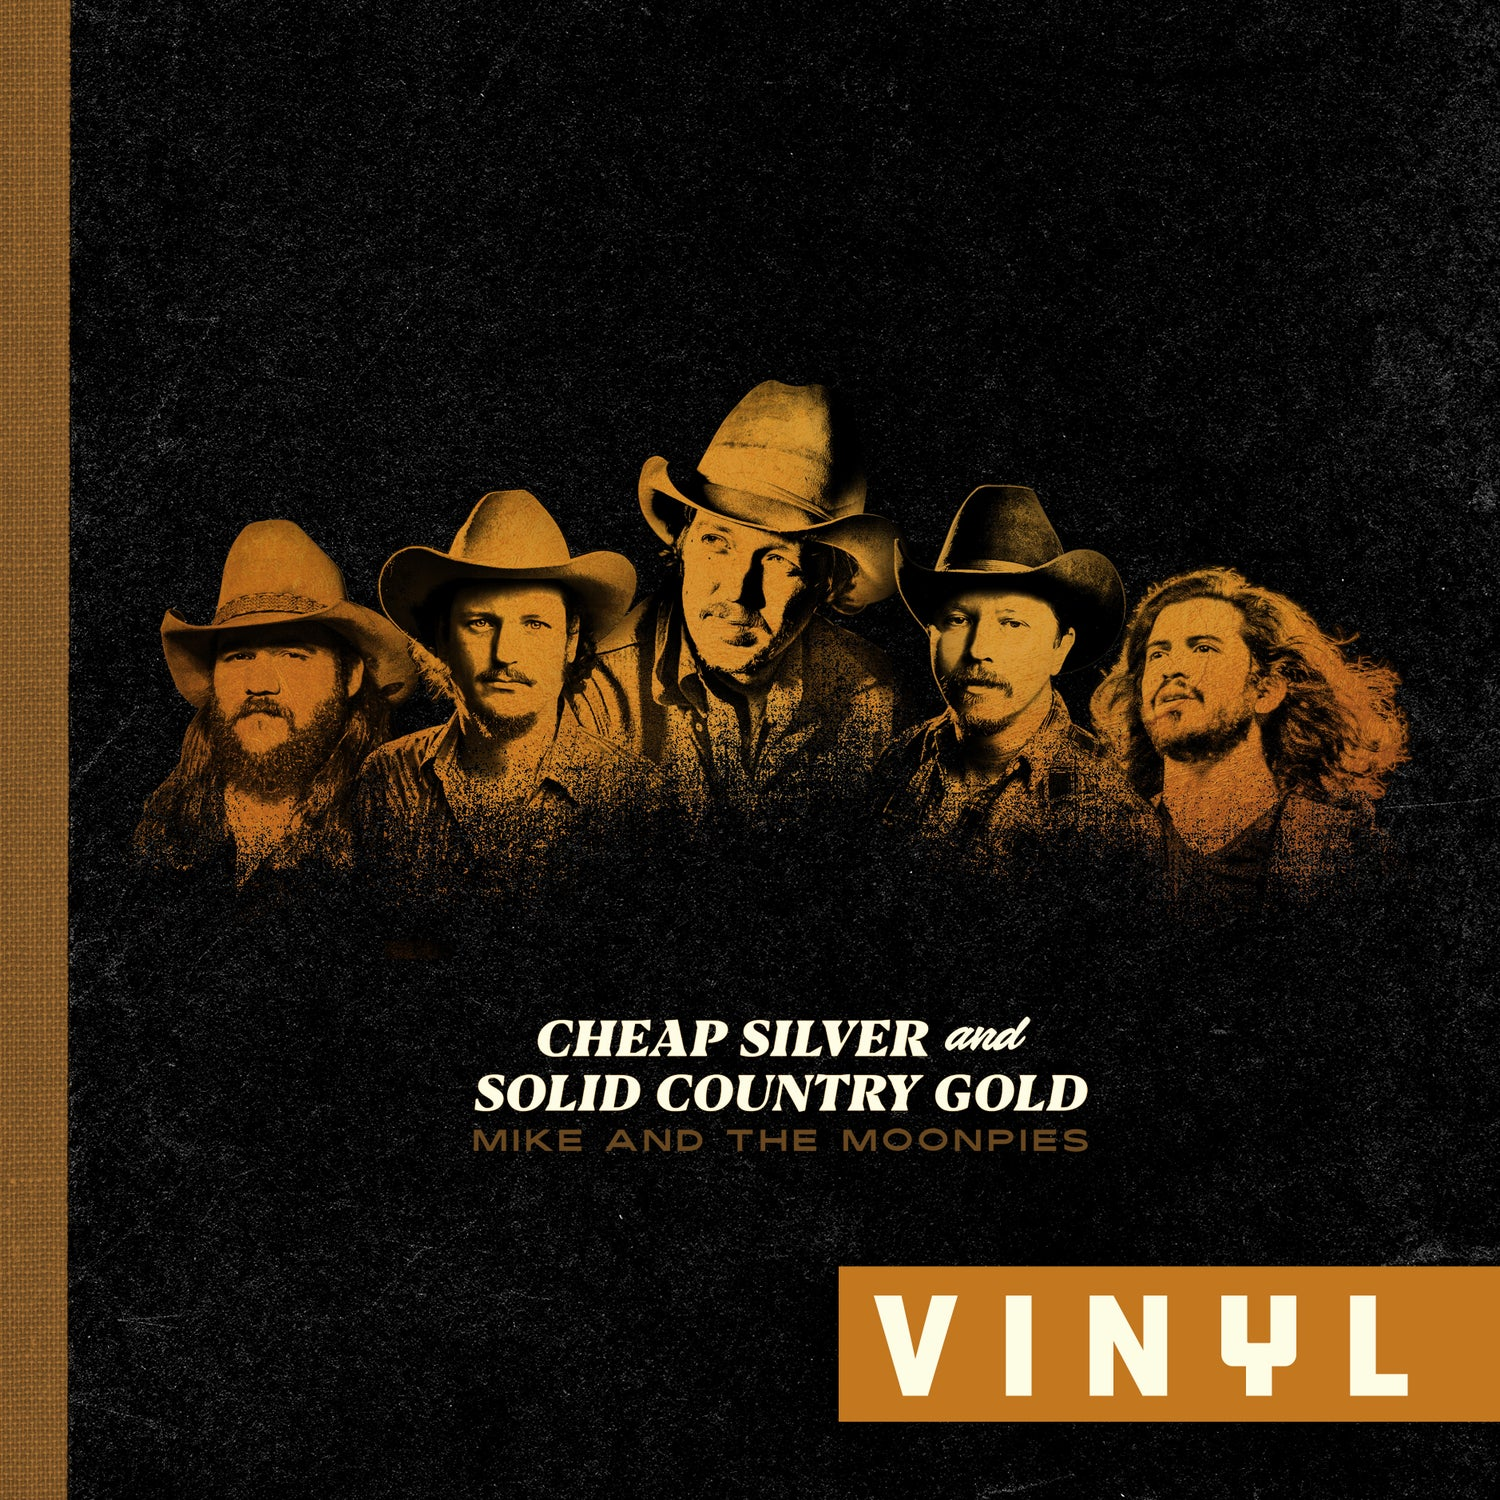 Image of VINYL Cheap Silver and Solid Country Gold